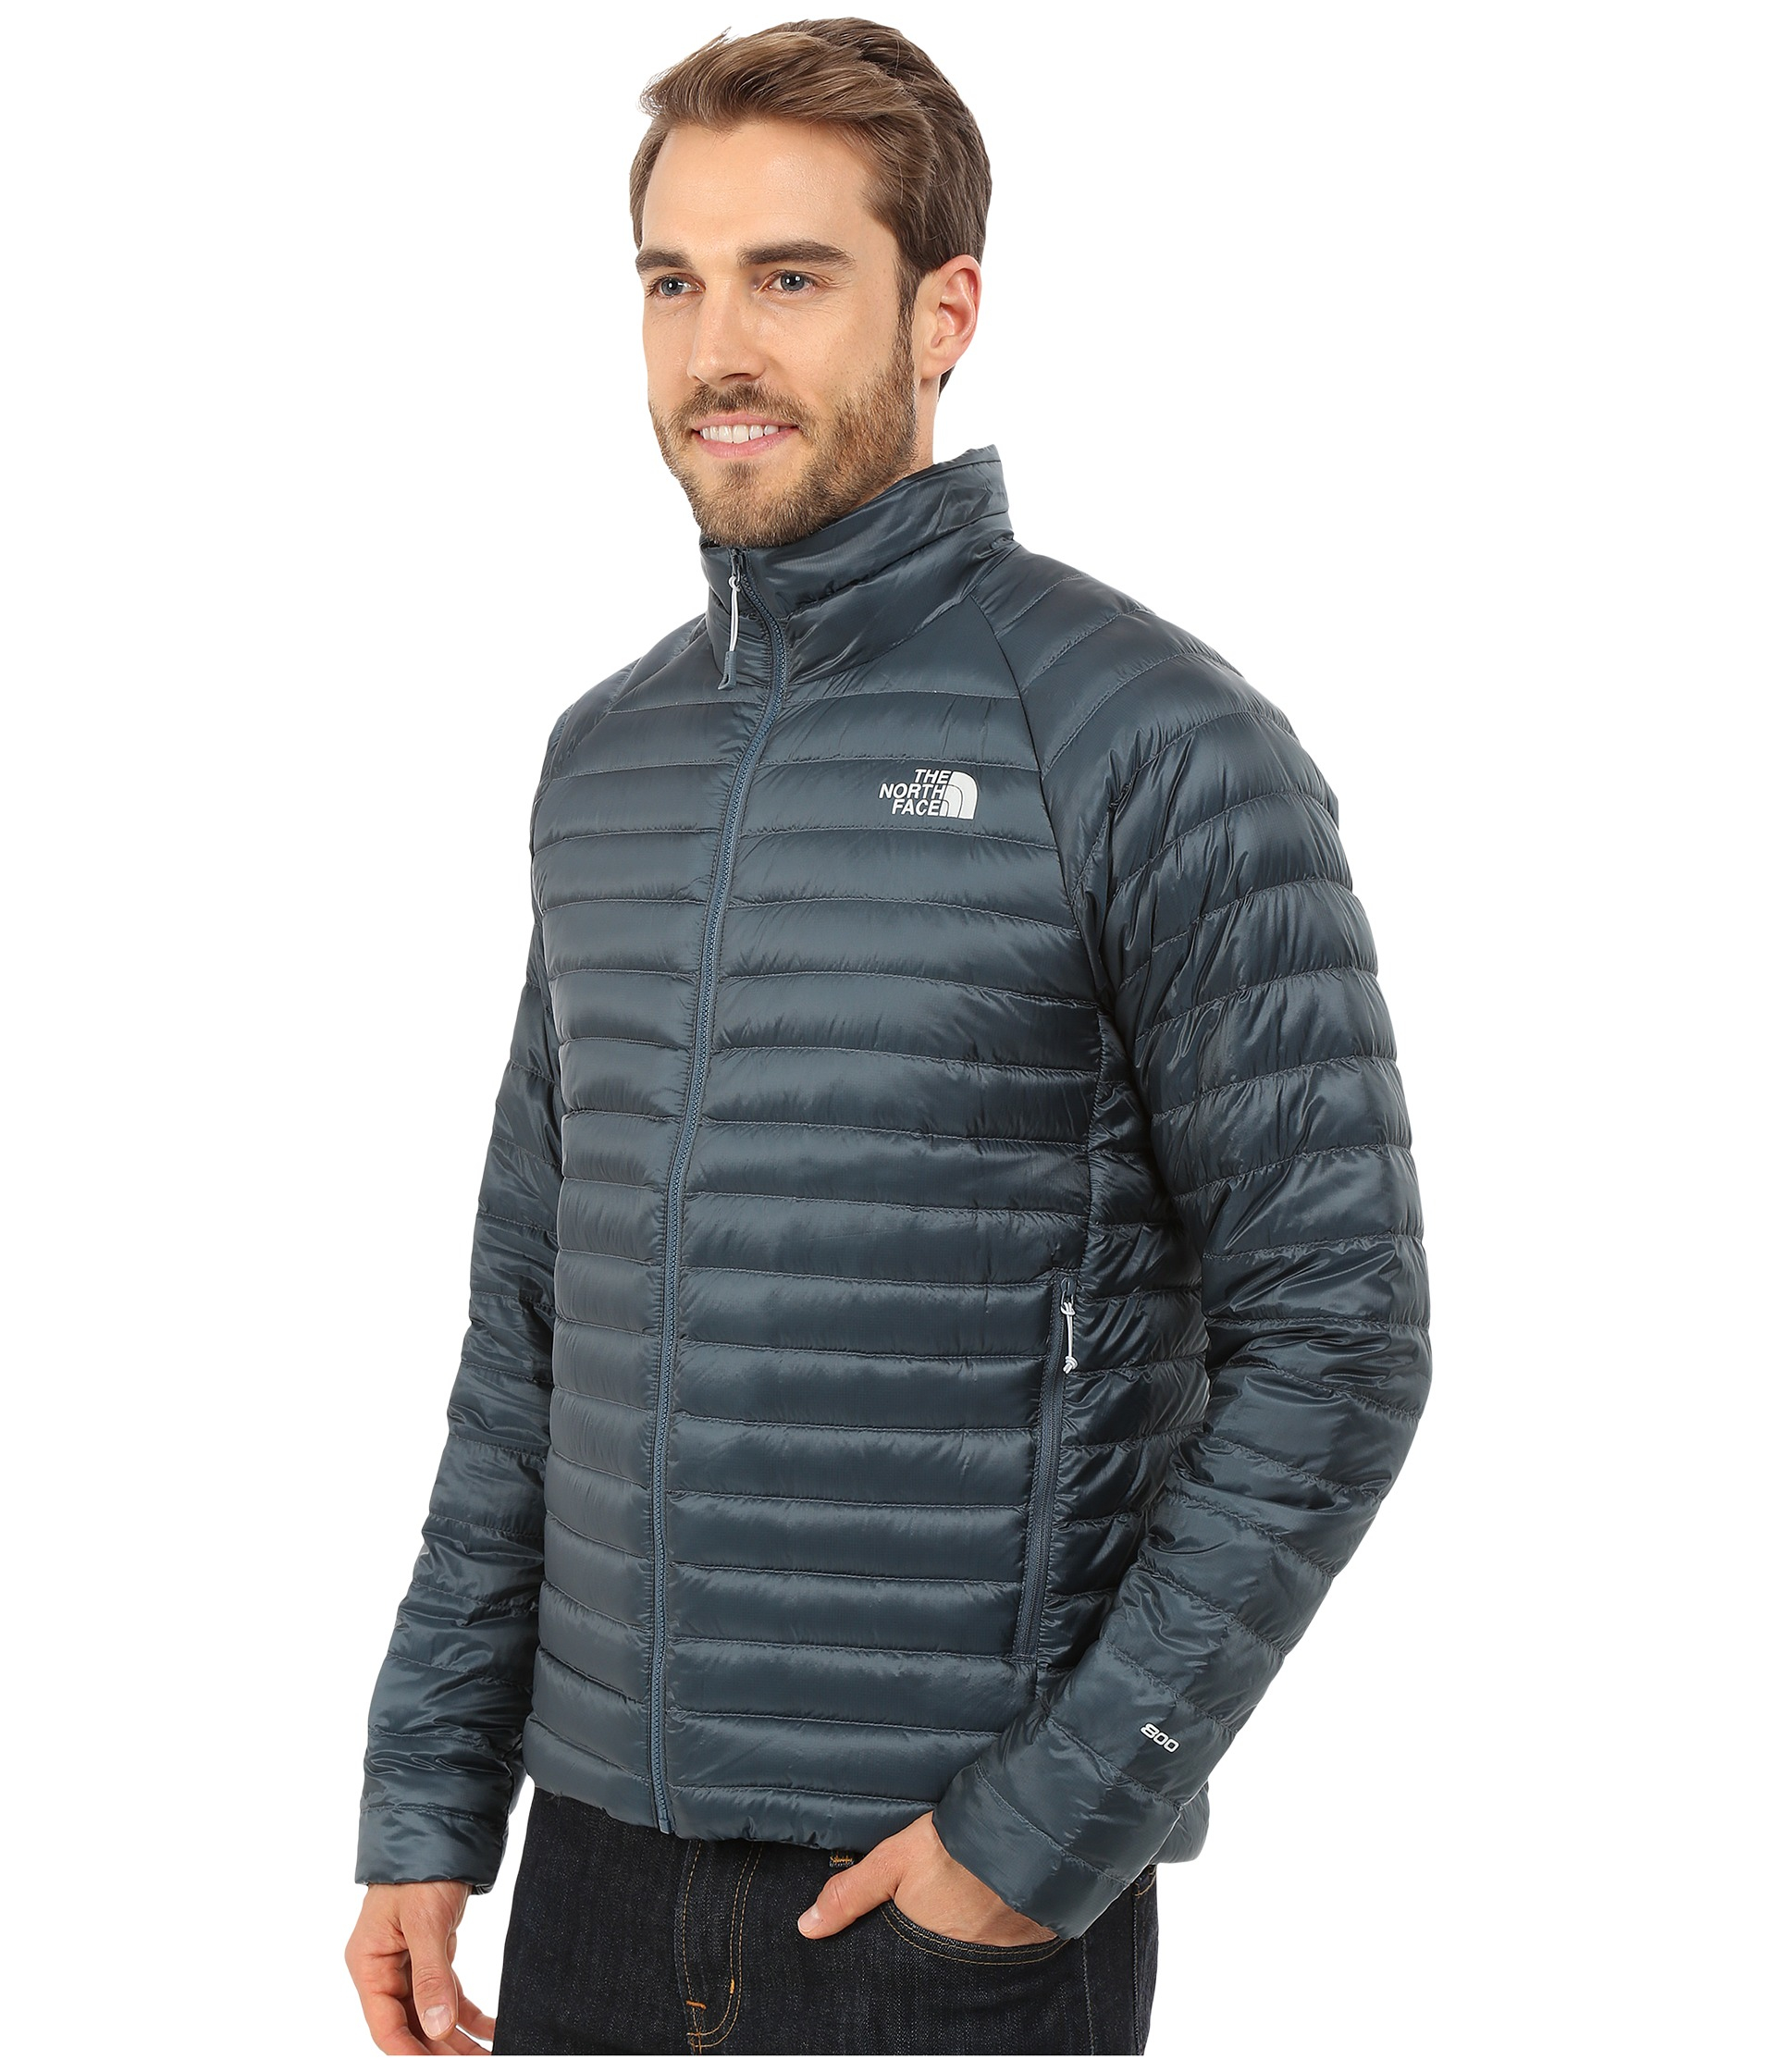 bd7d2e3f5 sweden north face quince jacket hooded ffddc 2b963